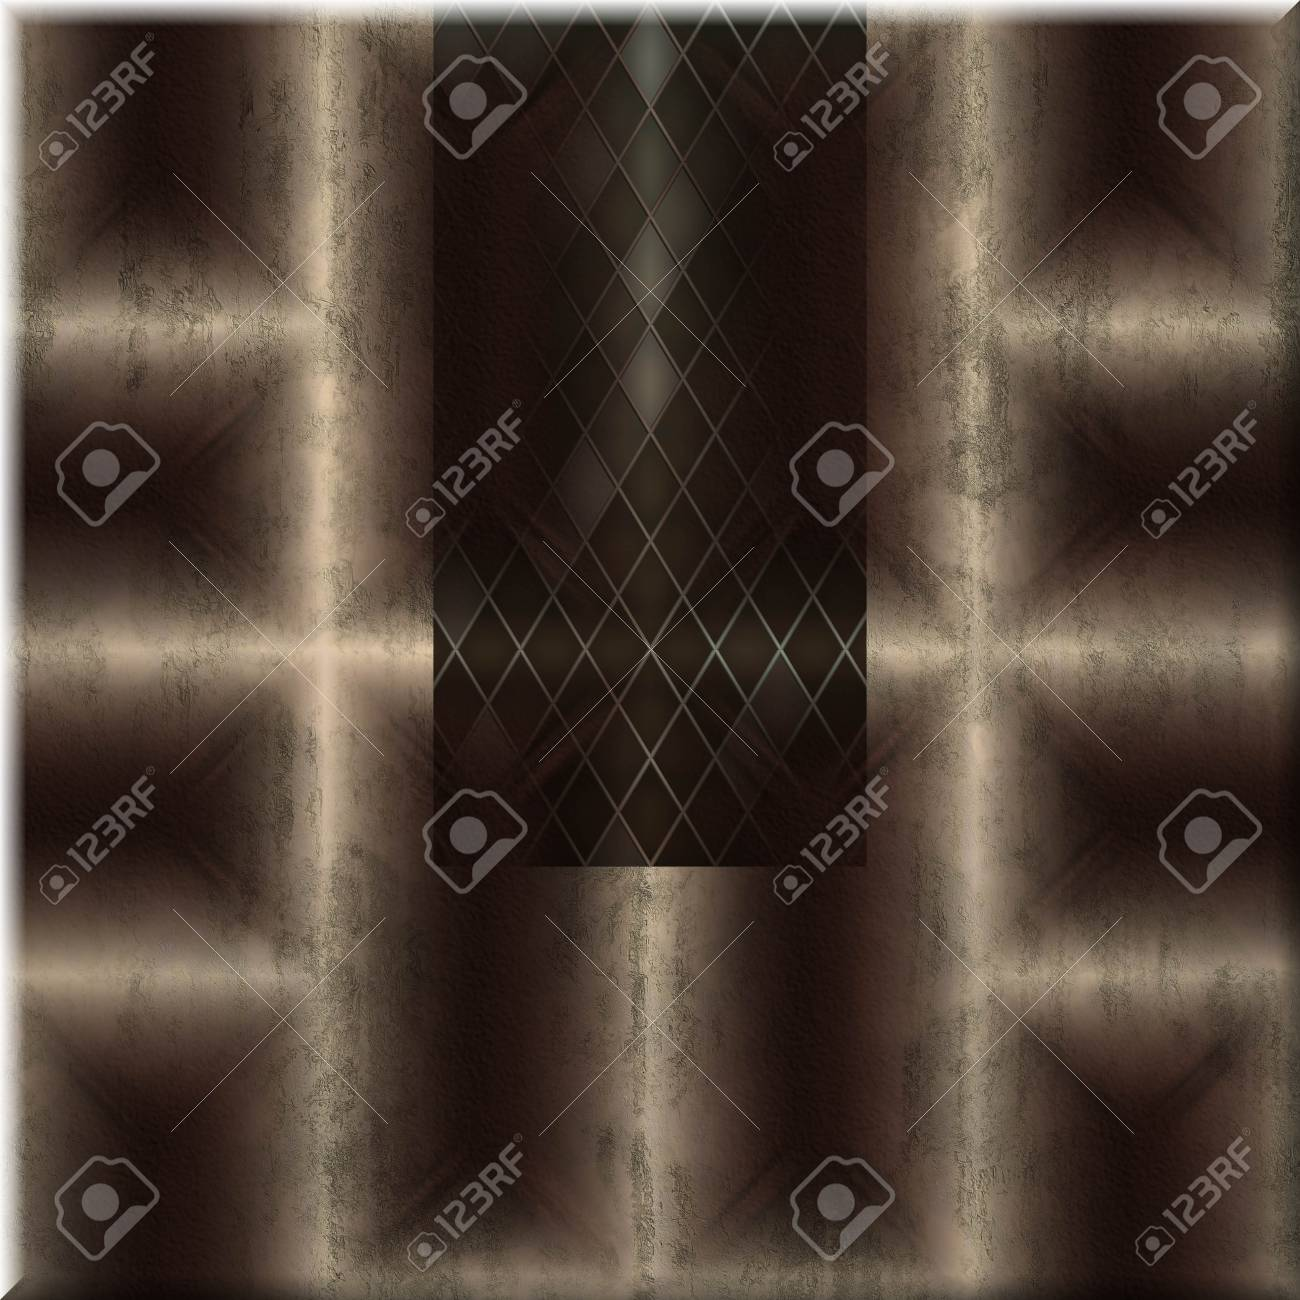 Ornate seamless texture in a square tile Stock Photo - 16237005